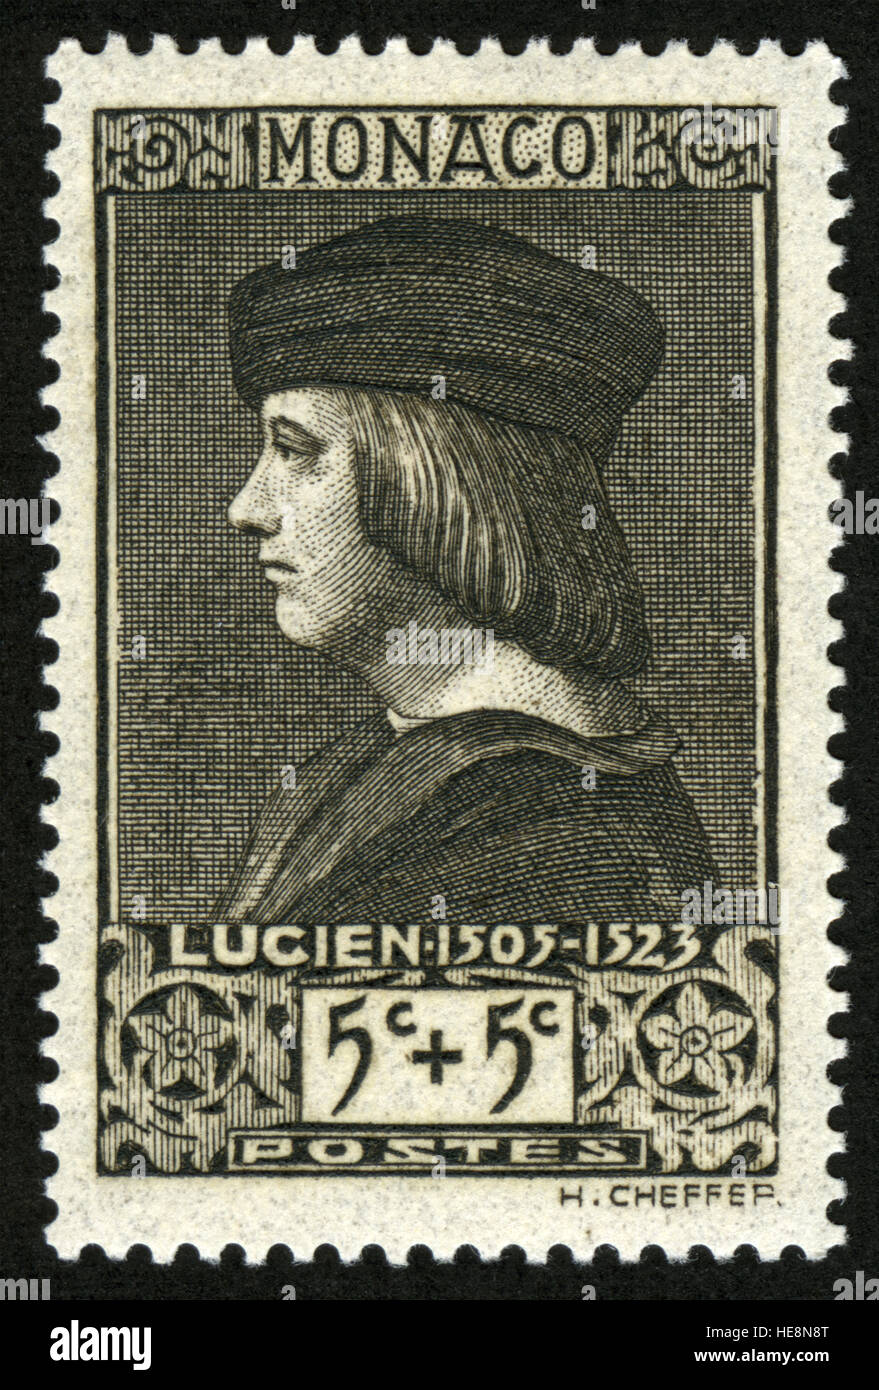 MONACO - CIRCA 1939-06-26: A stamp printed in Monaco shows Lucien, Lord of Monaco by Ambrogio de Predis, circa 1939 - Stock Image